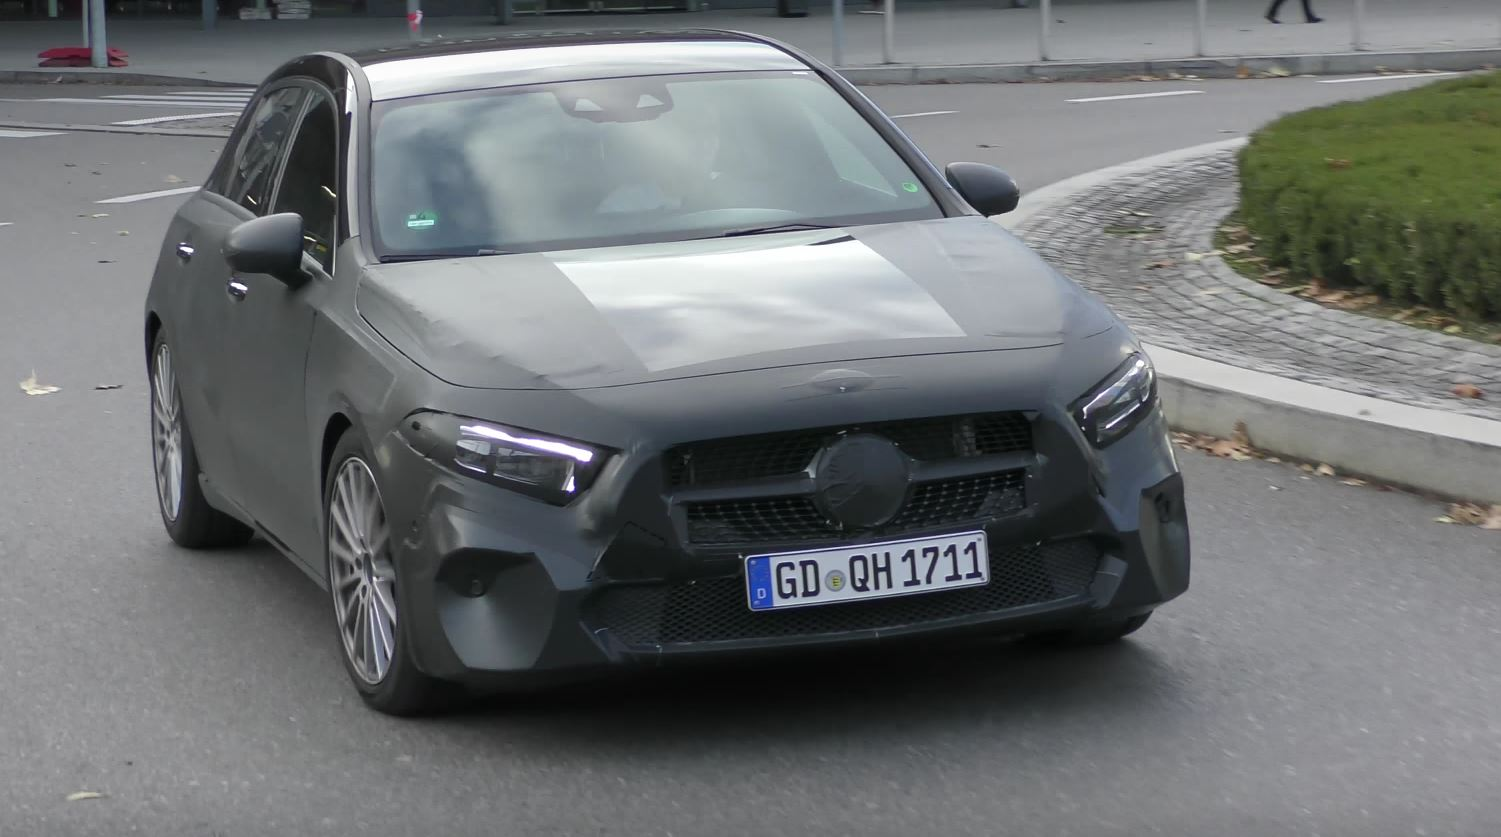 Mercedes CLS Caught on Video